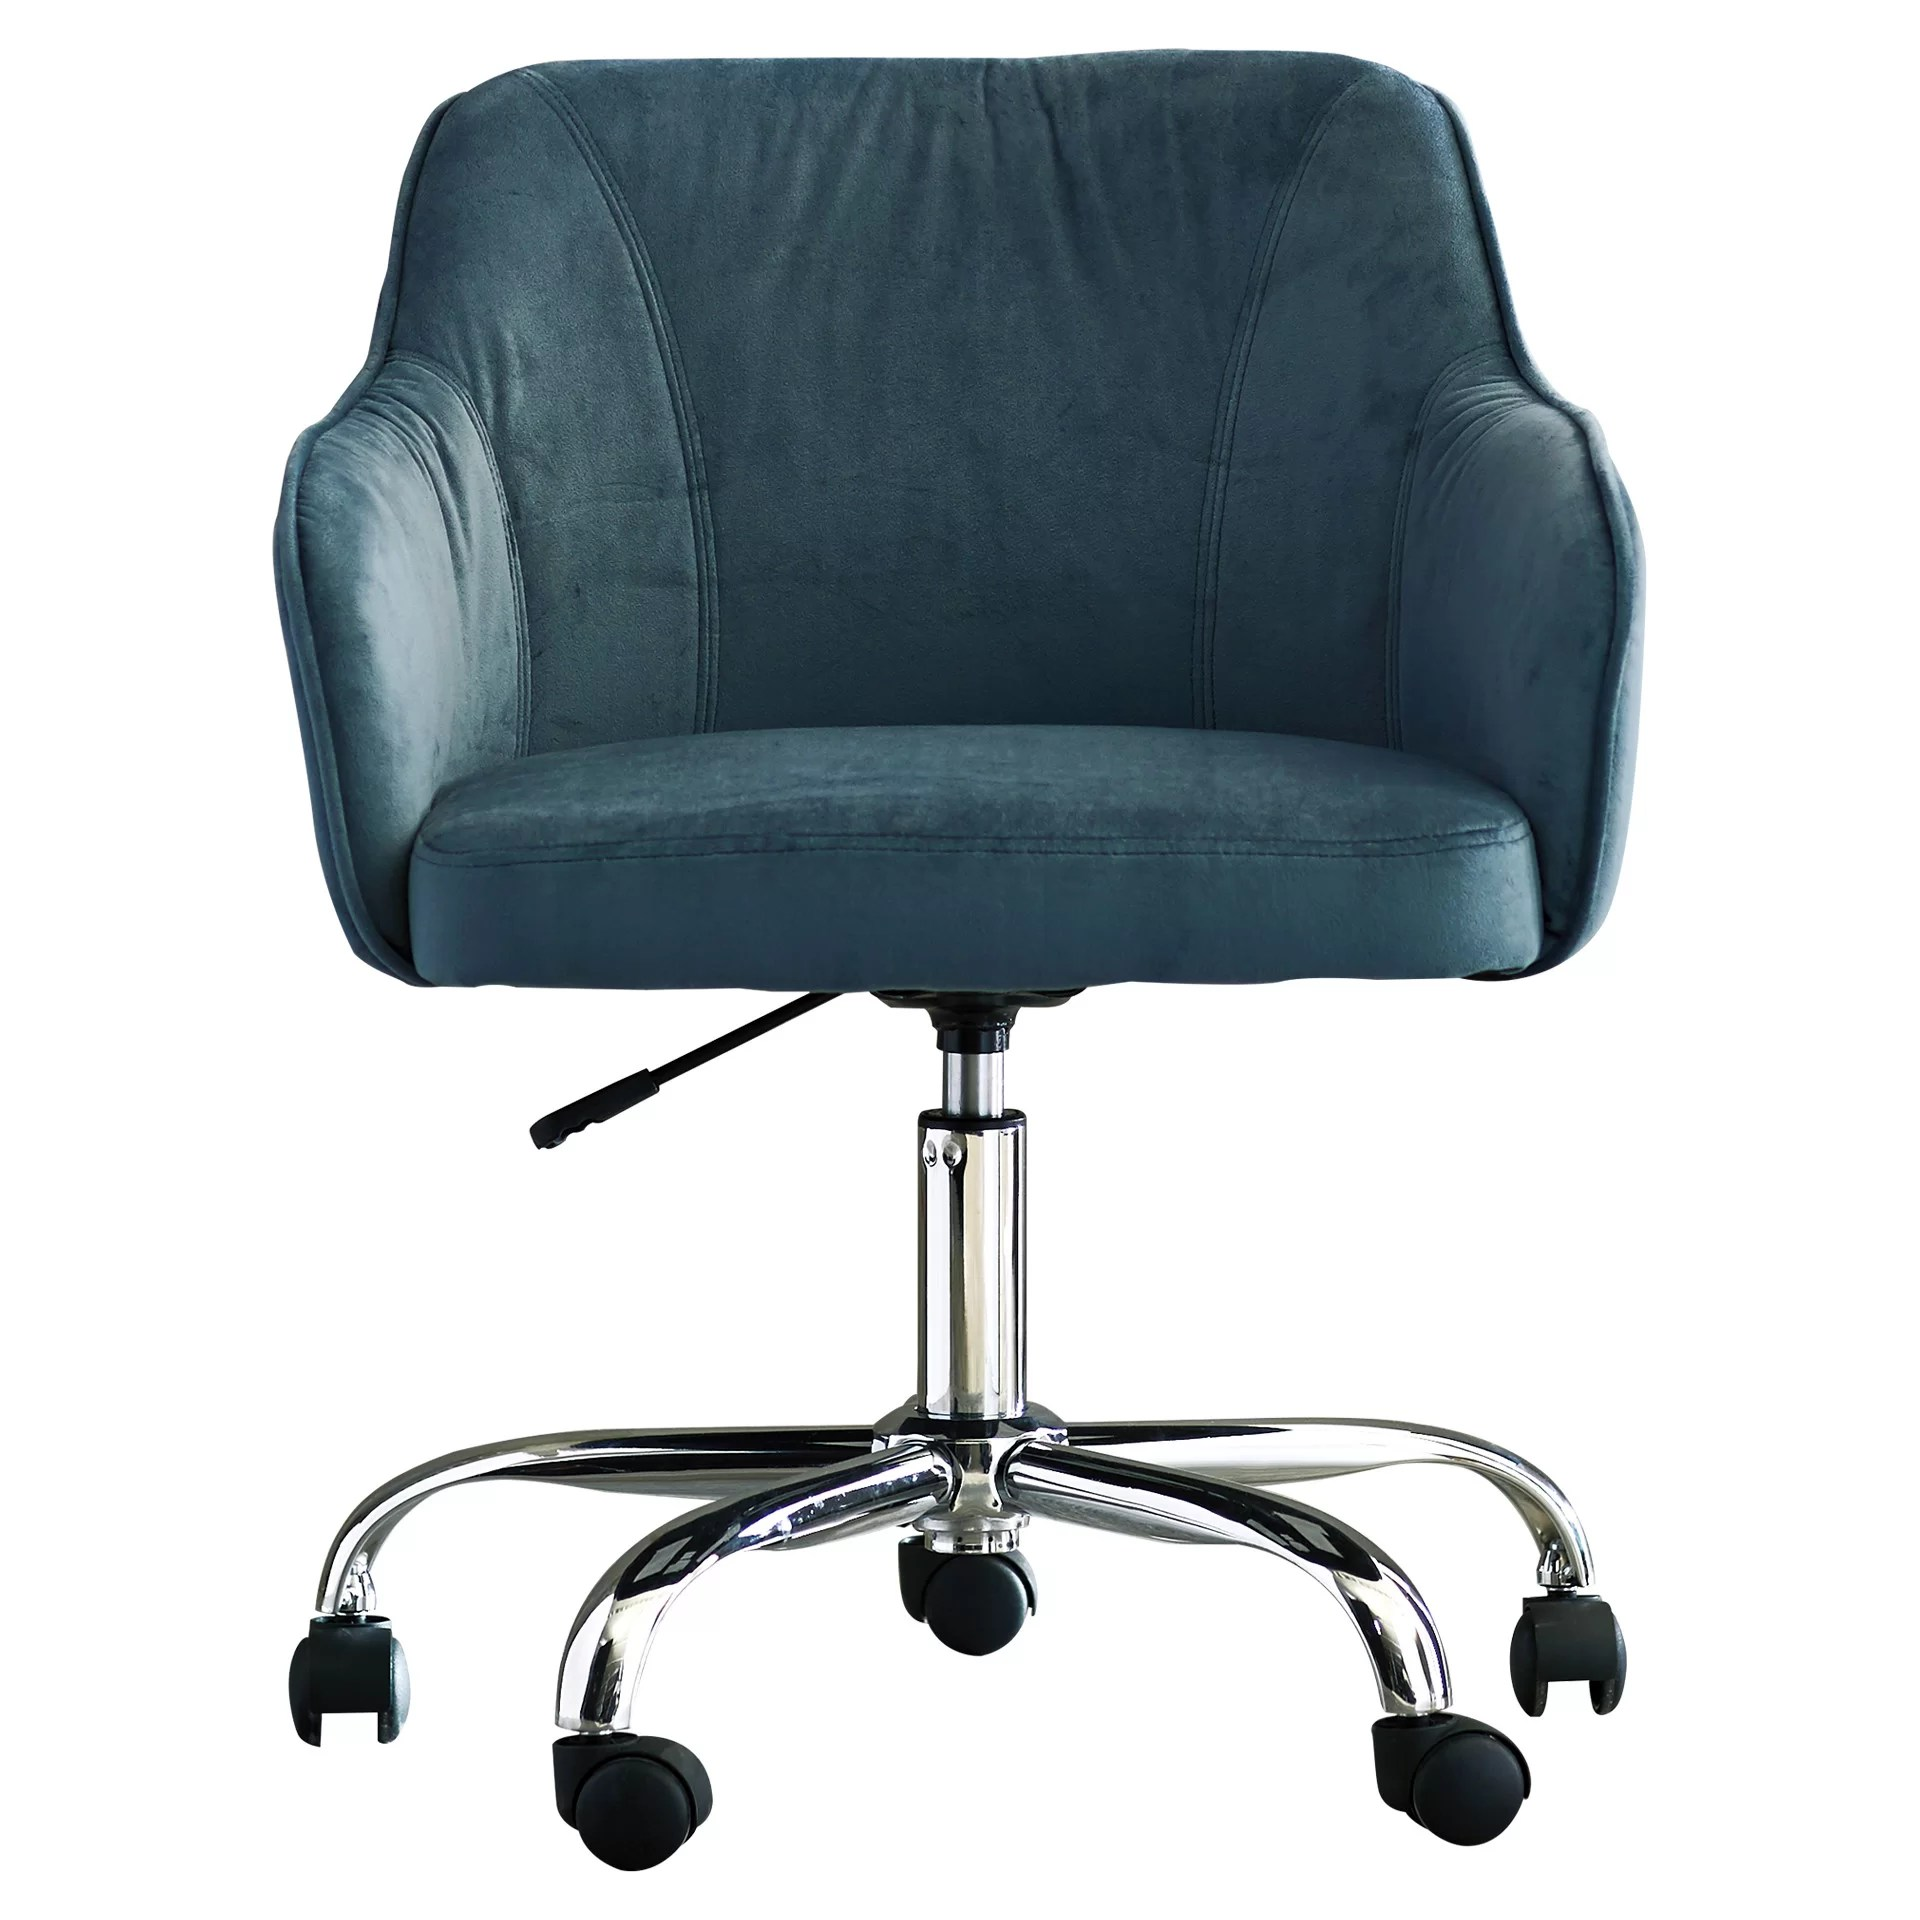 office chair velvet target childrens candace and reviews joss main